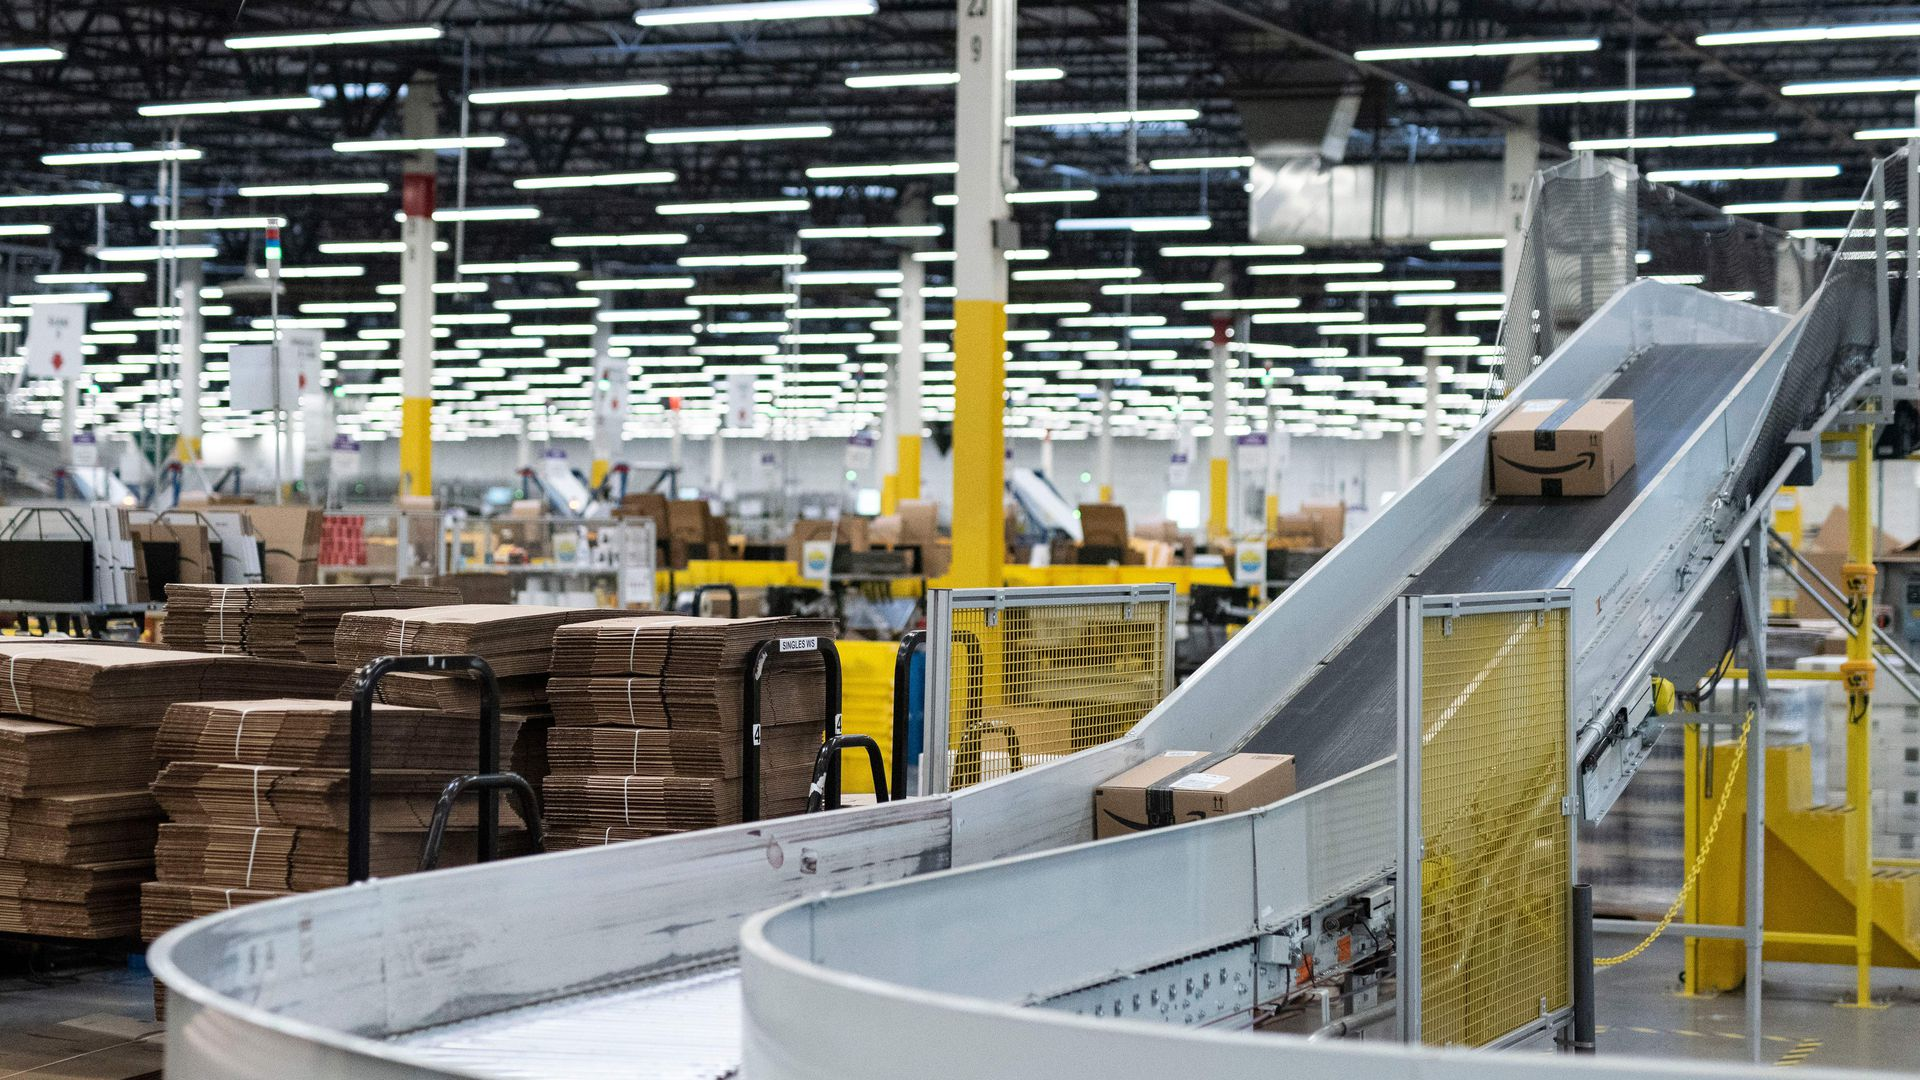 Package moves along conveyer belt in warehouse